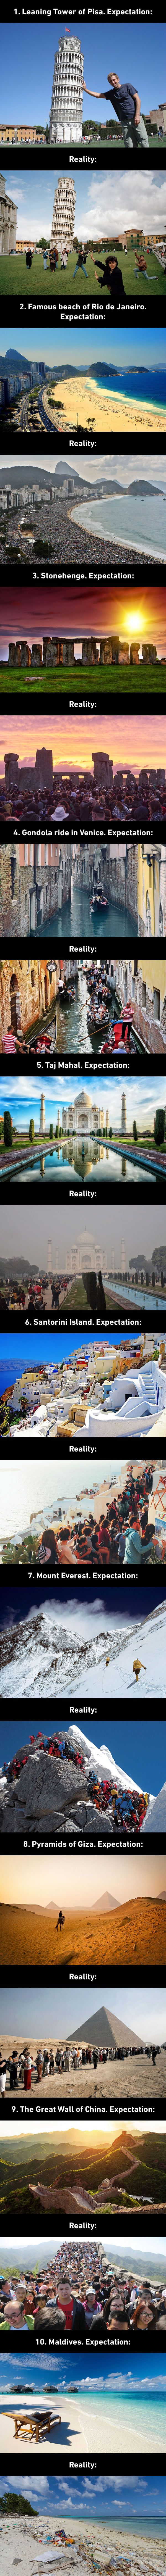 Top 10 Travel Expectations Vs Reality